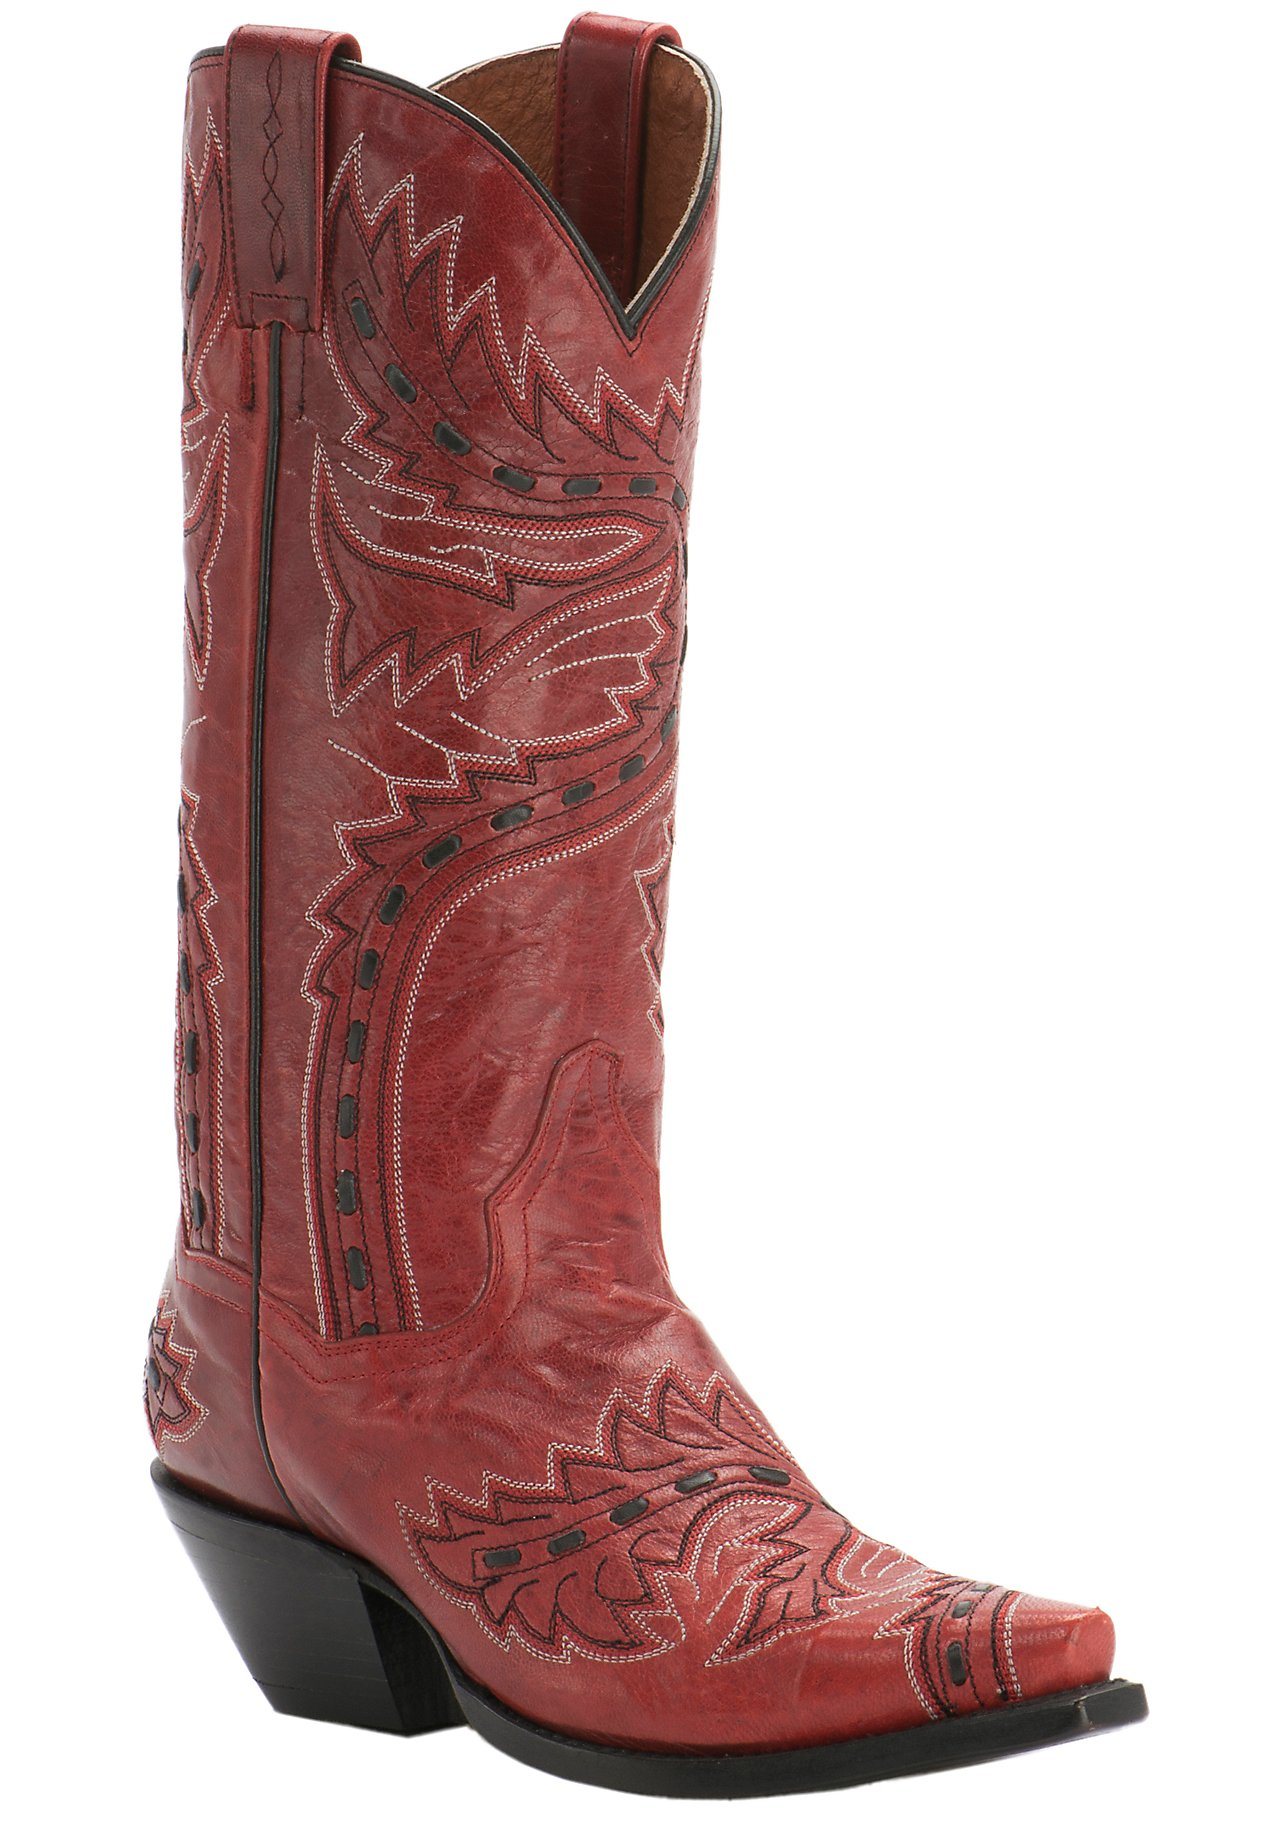 Shop Dan Post Boots - Free Shipping on Western/Cowboy Boots ...